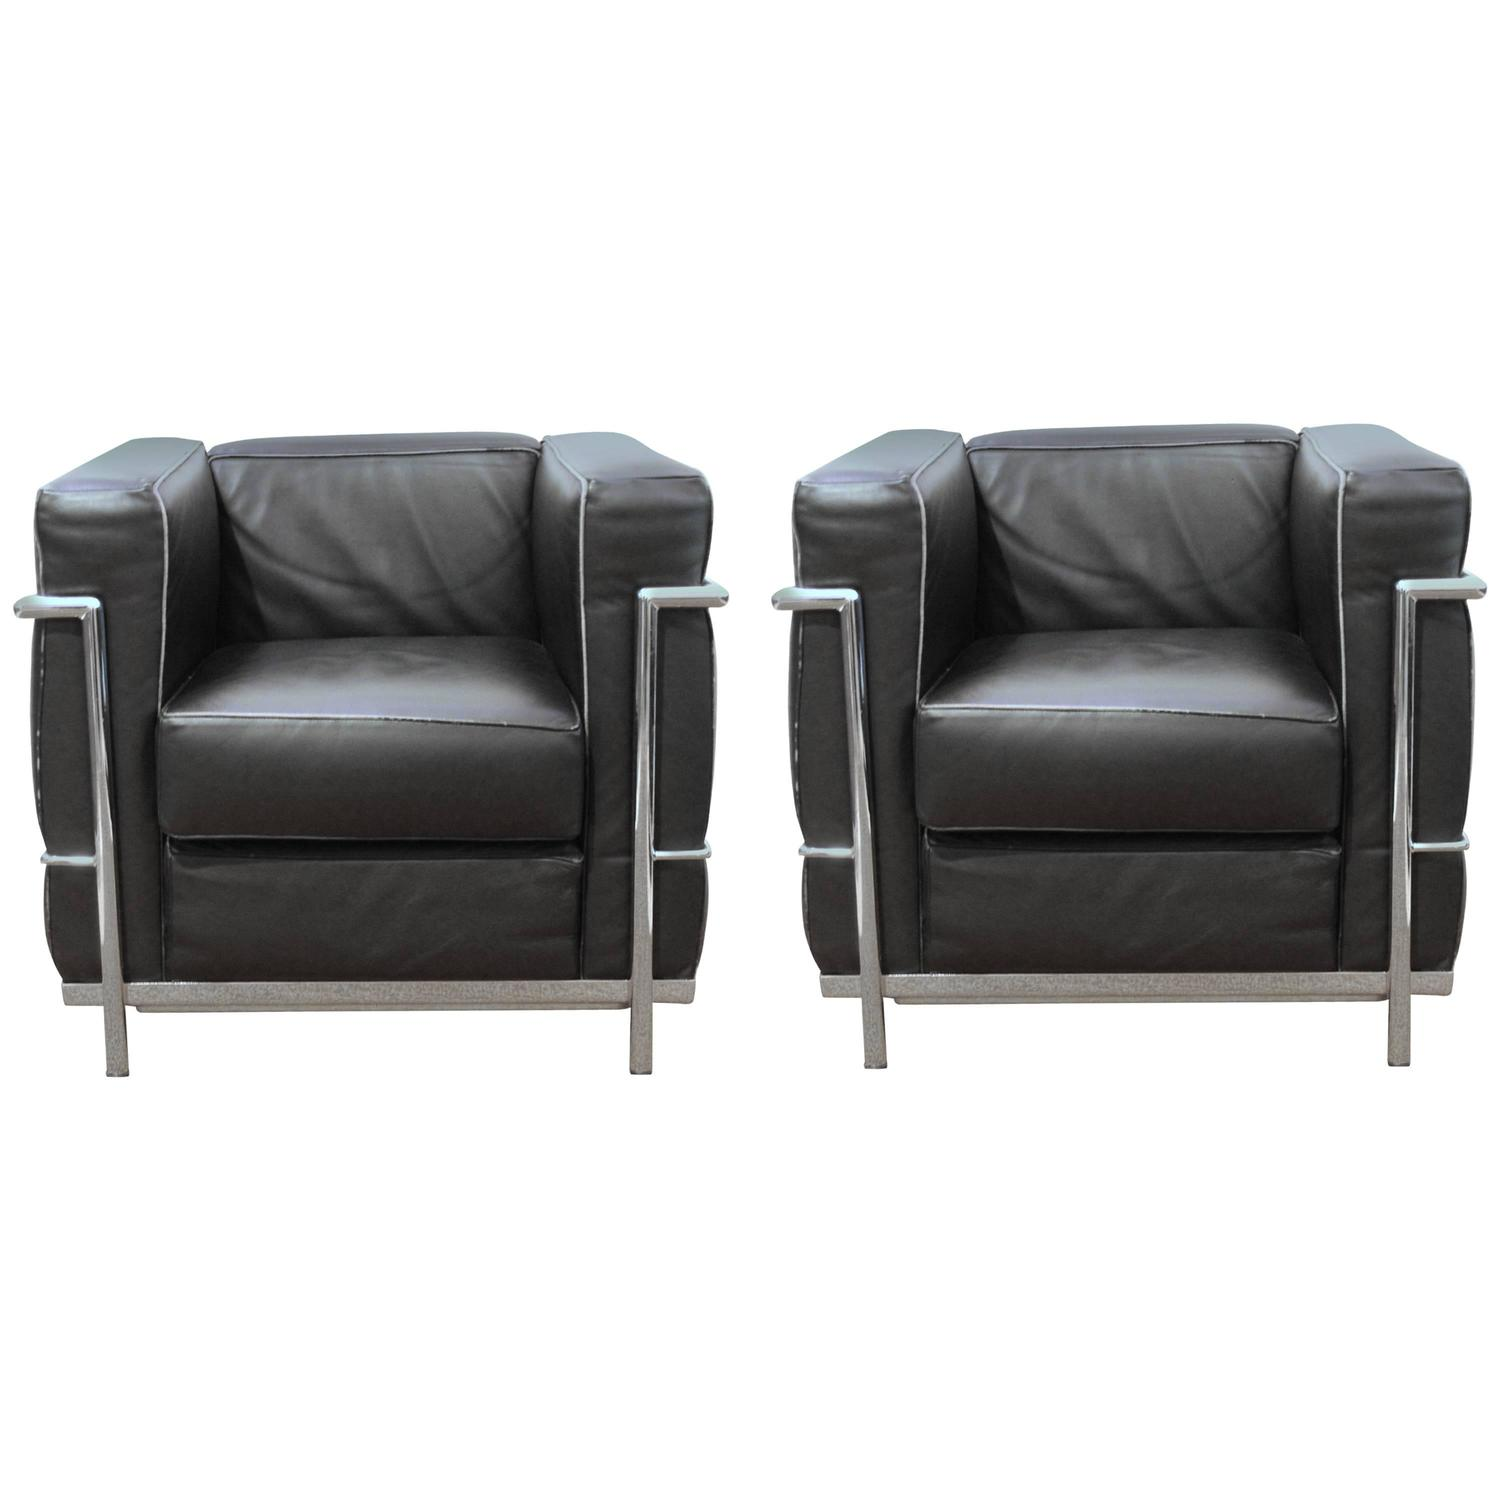 pair of lc2 armchairs by le corbusier for alivar for sale at 1stdibs